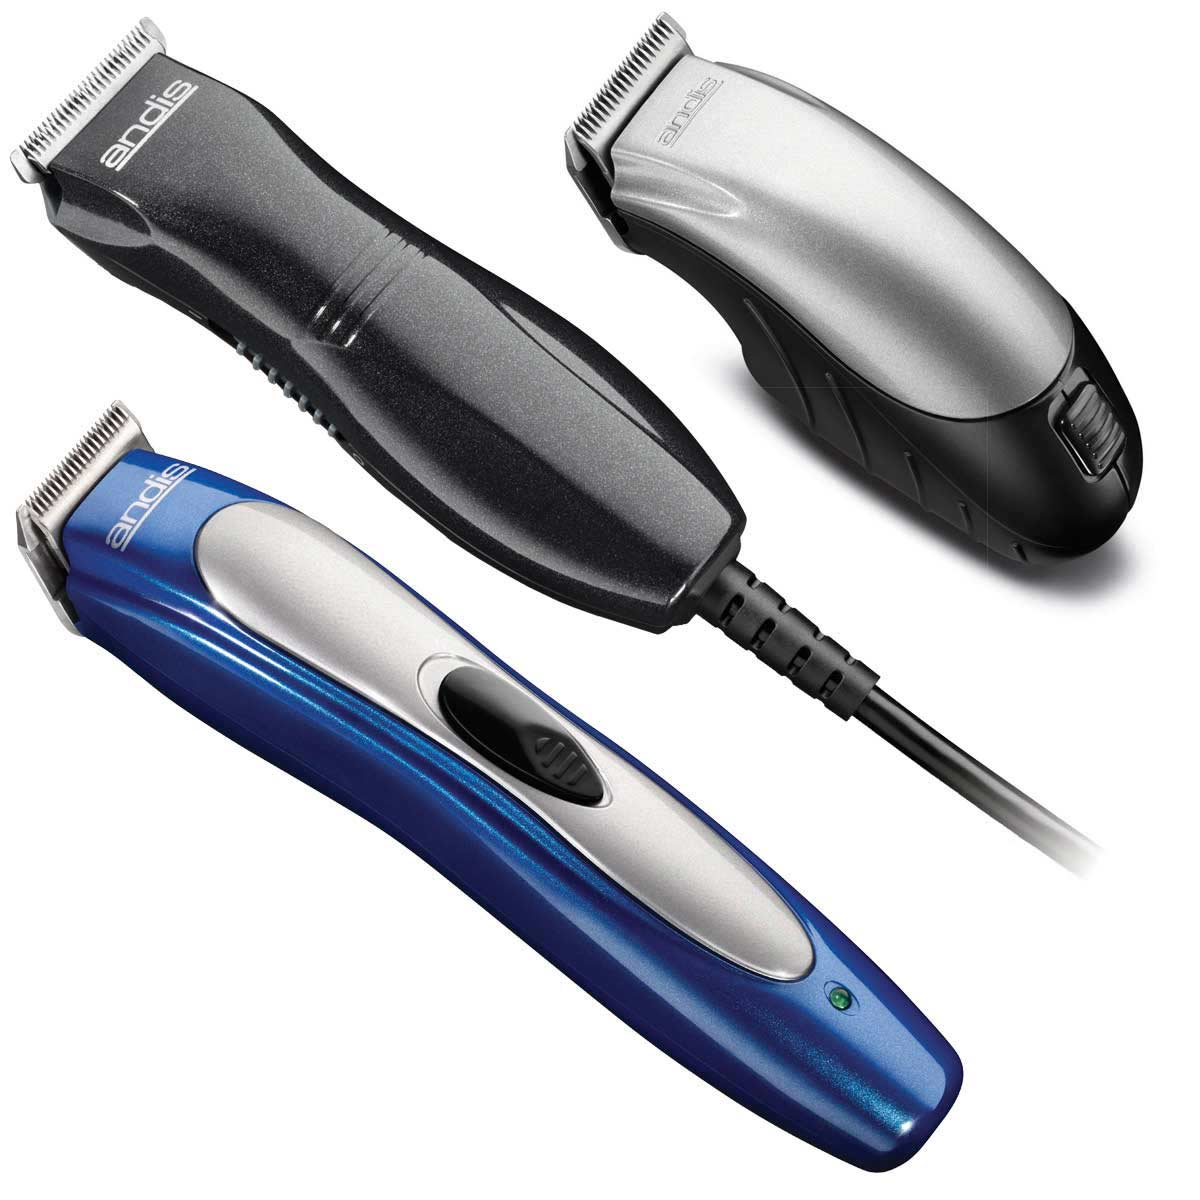 Andis 3-Pack Trimmer Kit includes Andis EasyClipMini Clipper, Andis ProTrim Li+ Clipper, and Andis Trim n Go Clipper